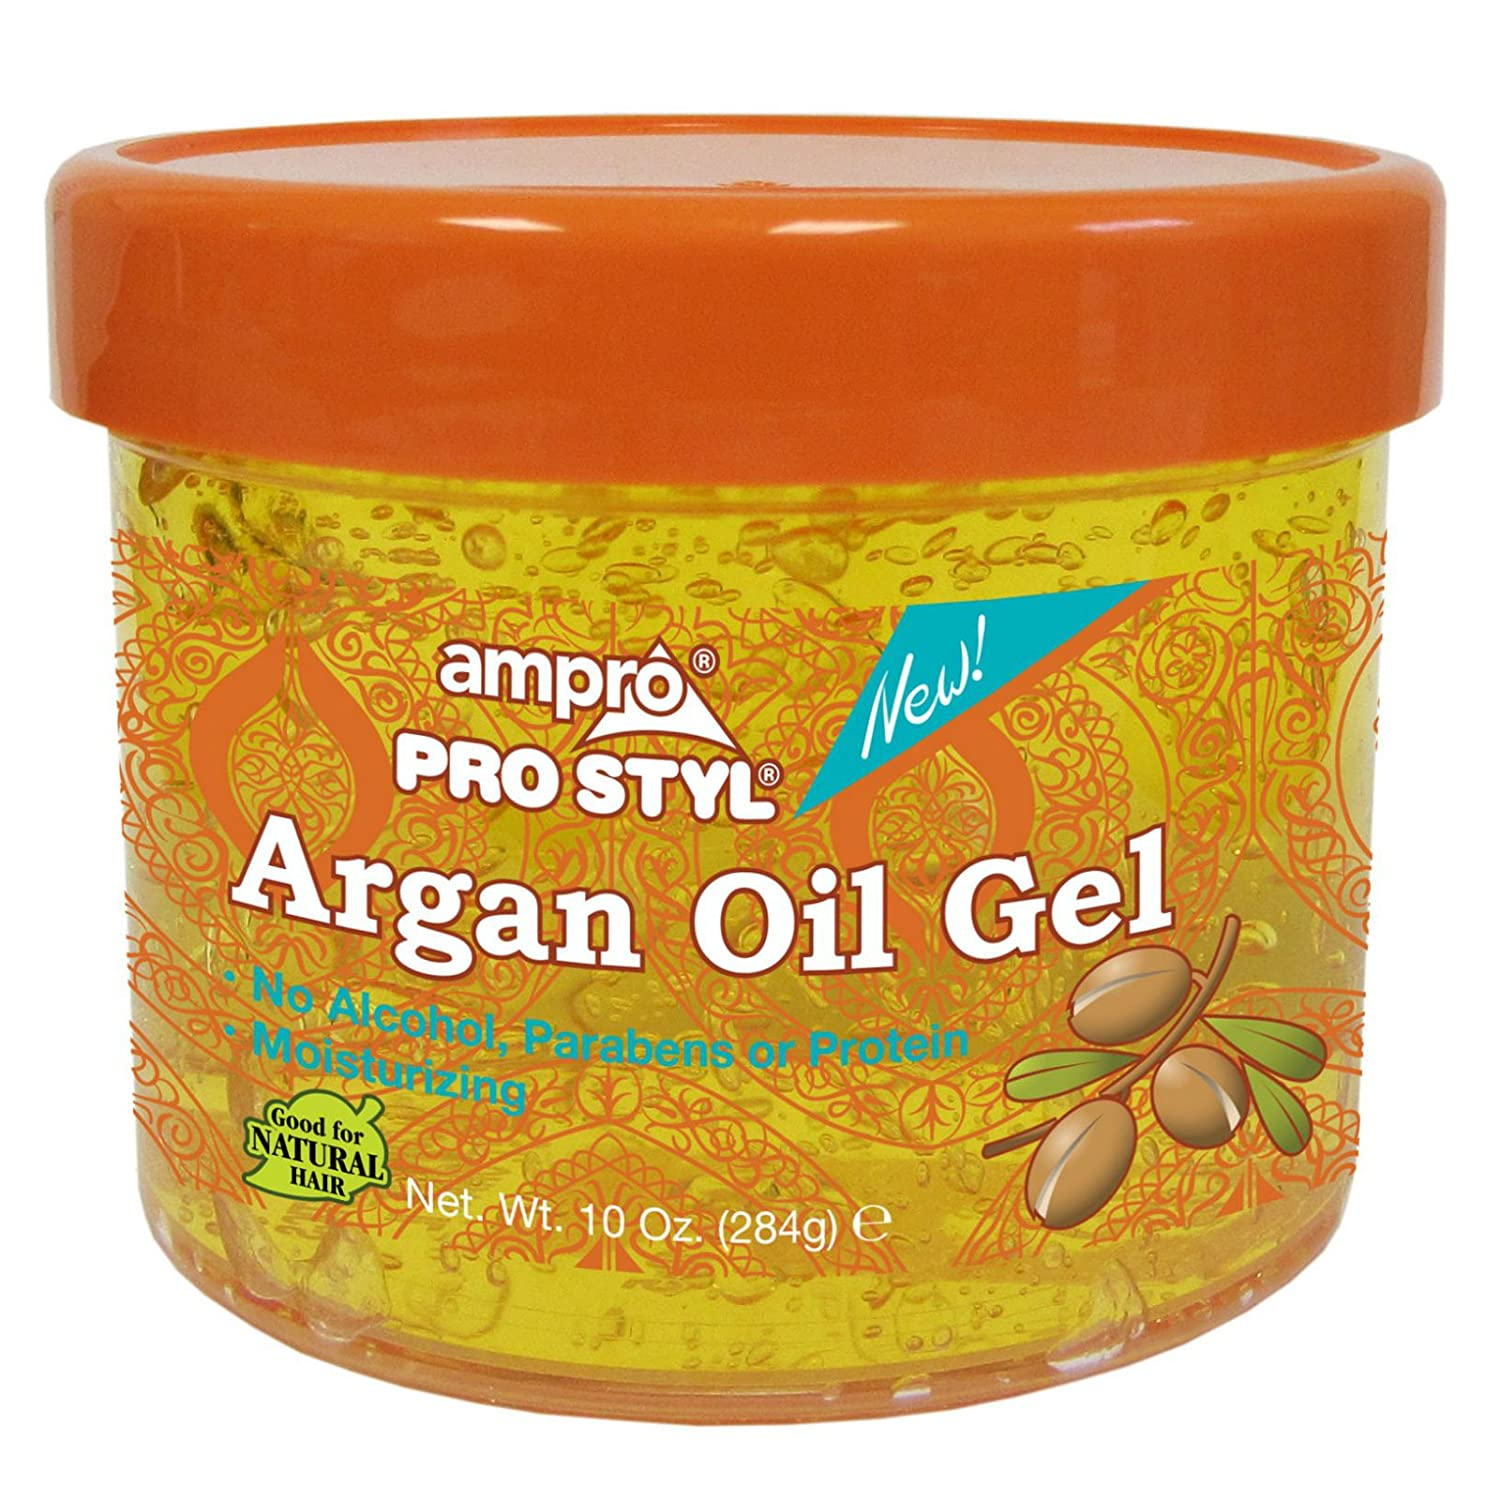 Amazon Com Ampro Pro Styl Argan Oil Gel 10 Oz Beauty